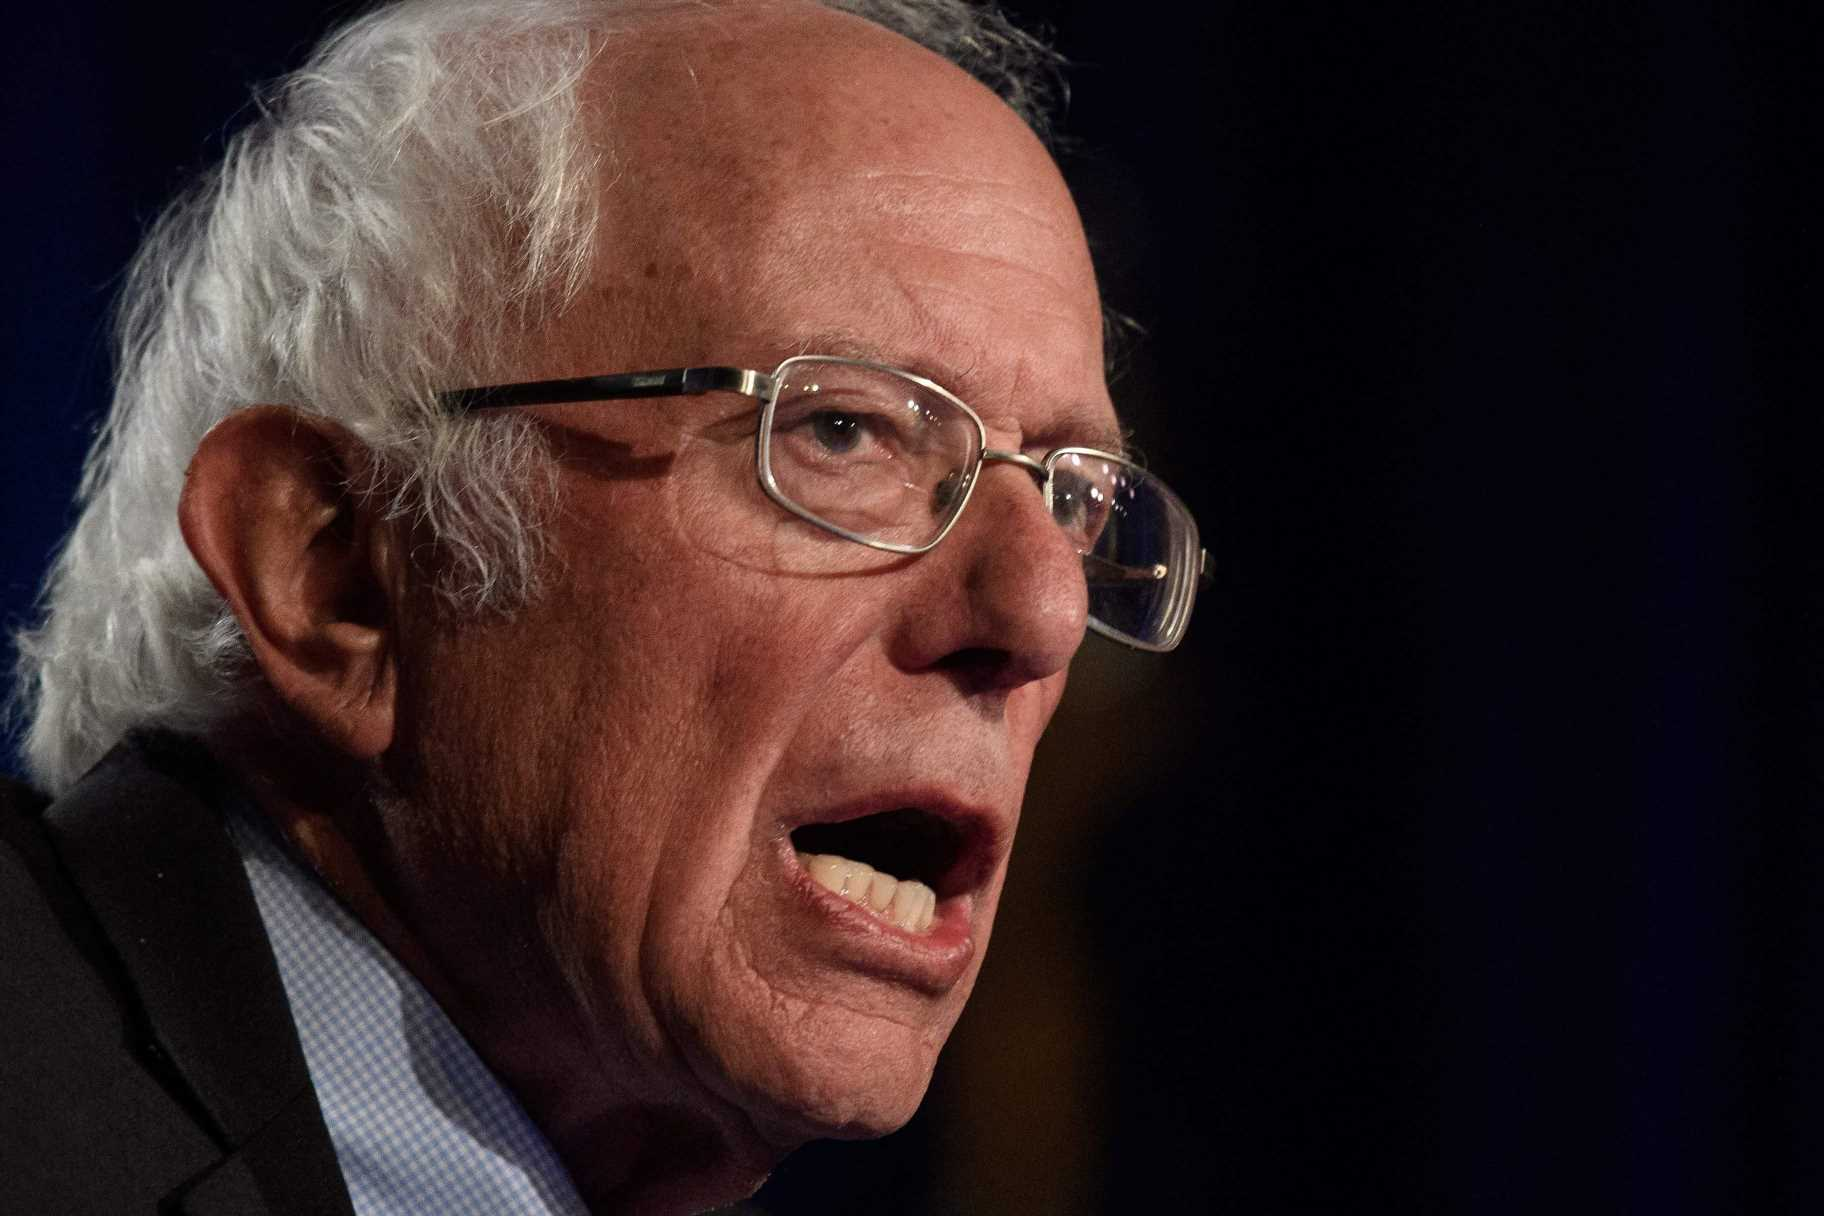 Book reveals Bernie's hotel demands: King-size beds and 60-degree rooms